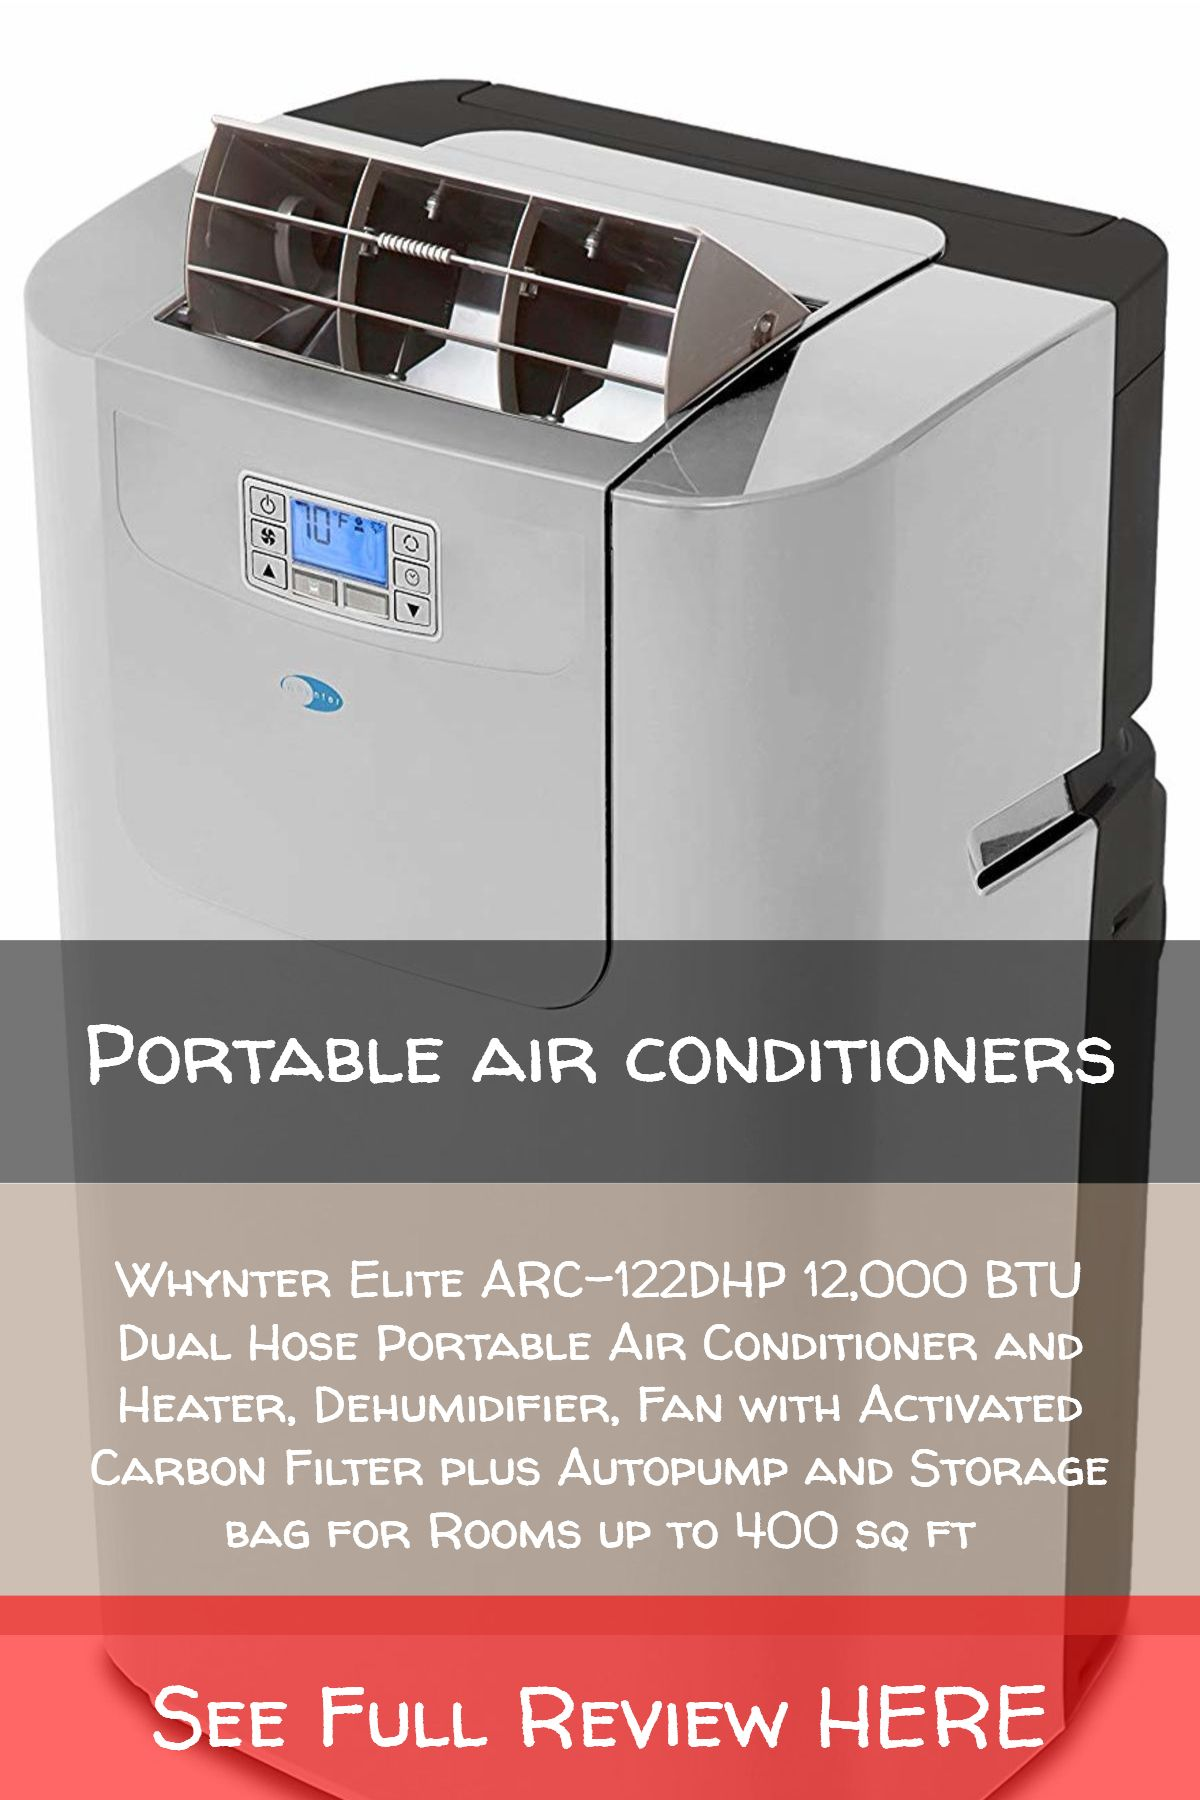 Dehumidifier Fan with Activated Carbon Filter plus Autopump and Storage bag for Rooms up to 400 sq ft Whynter Elite ARC-122DHP 12,000 BTU Dual Hose Portable Air Conditioner and Heater